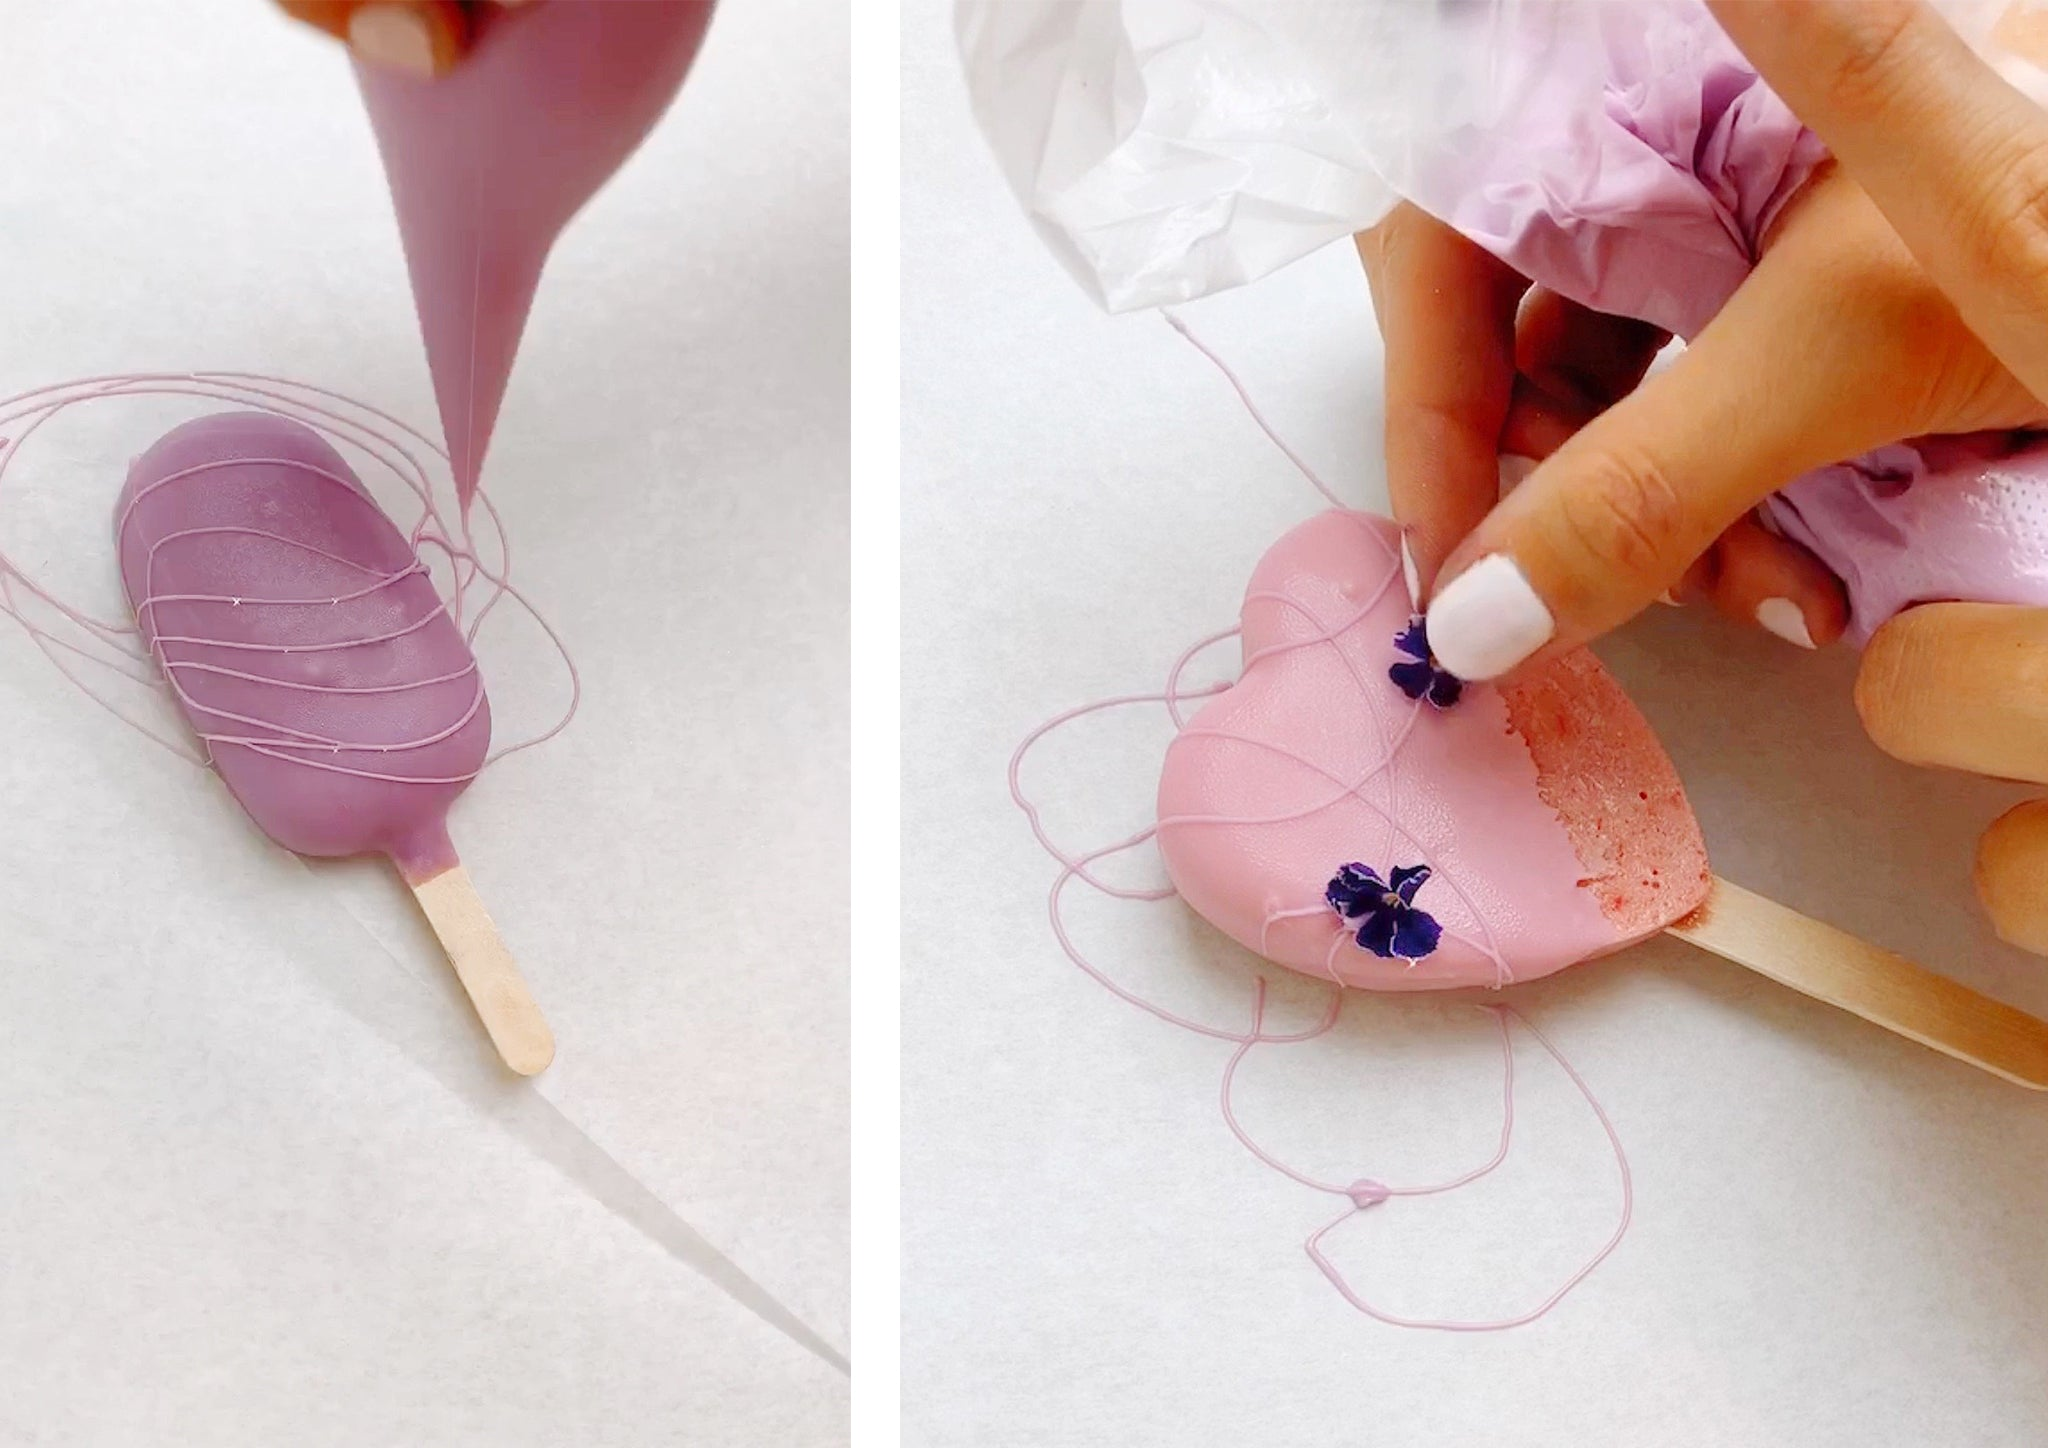 decorating popsicles with chocolate and edible flowers